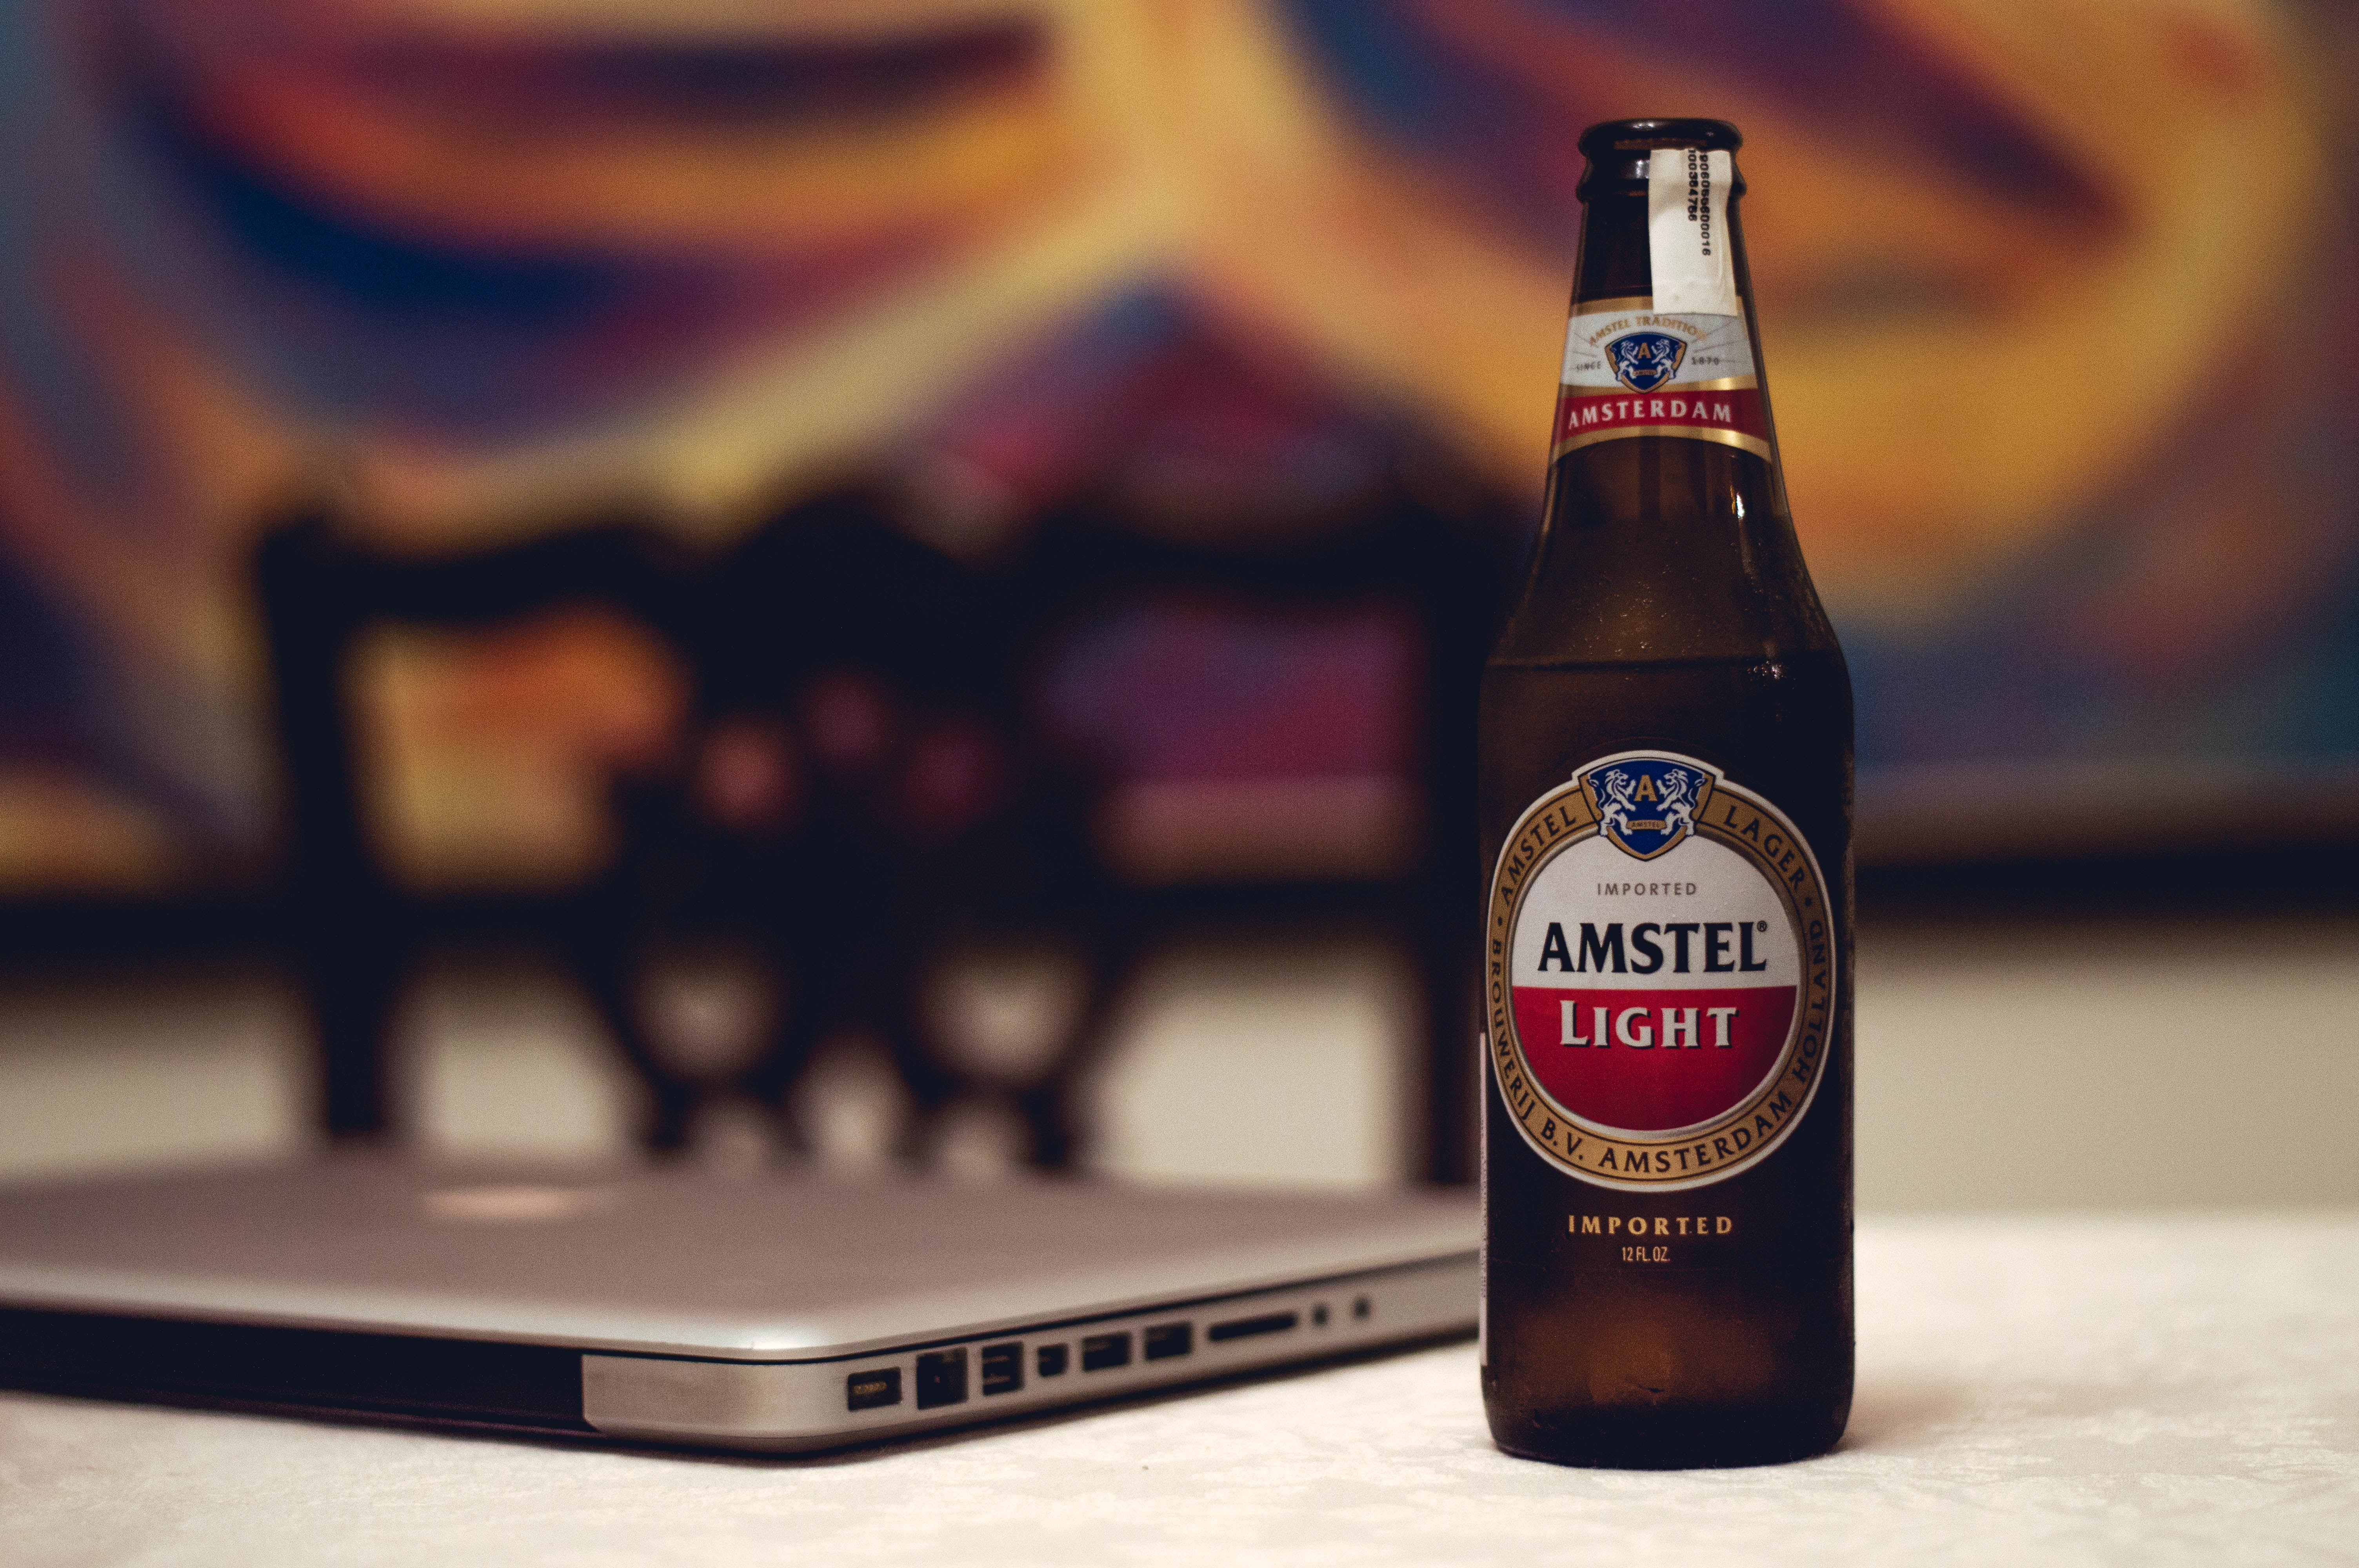 An Amstel light beer placed next to an apple MacBook laptop in New Delhi